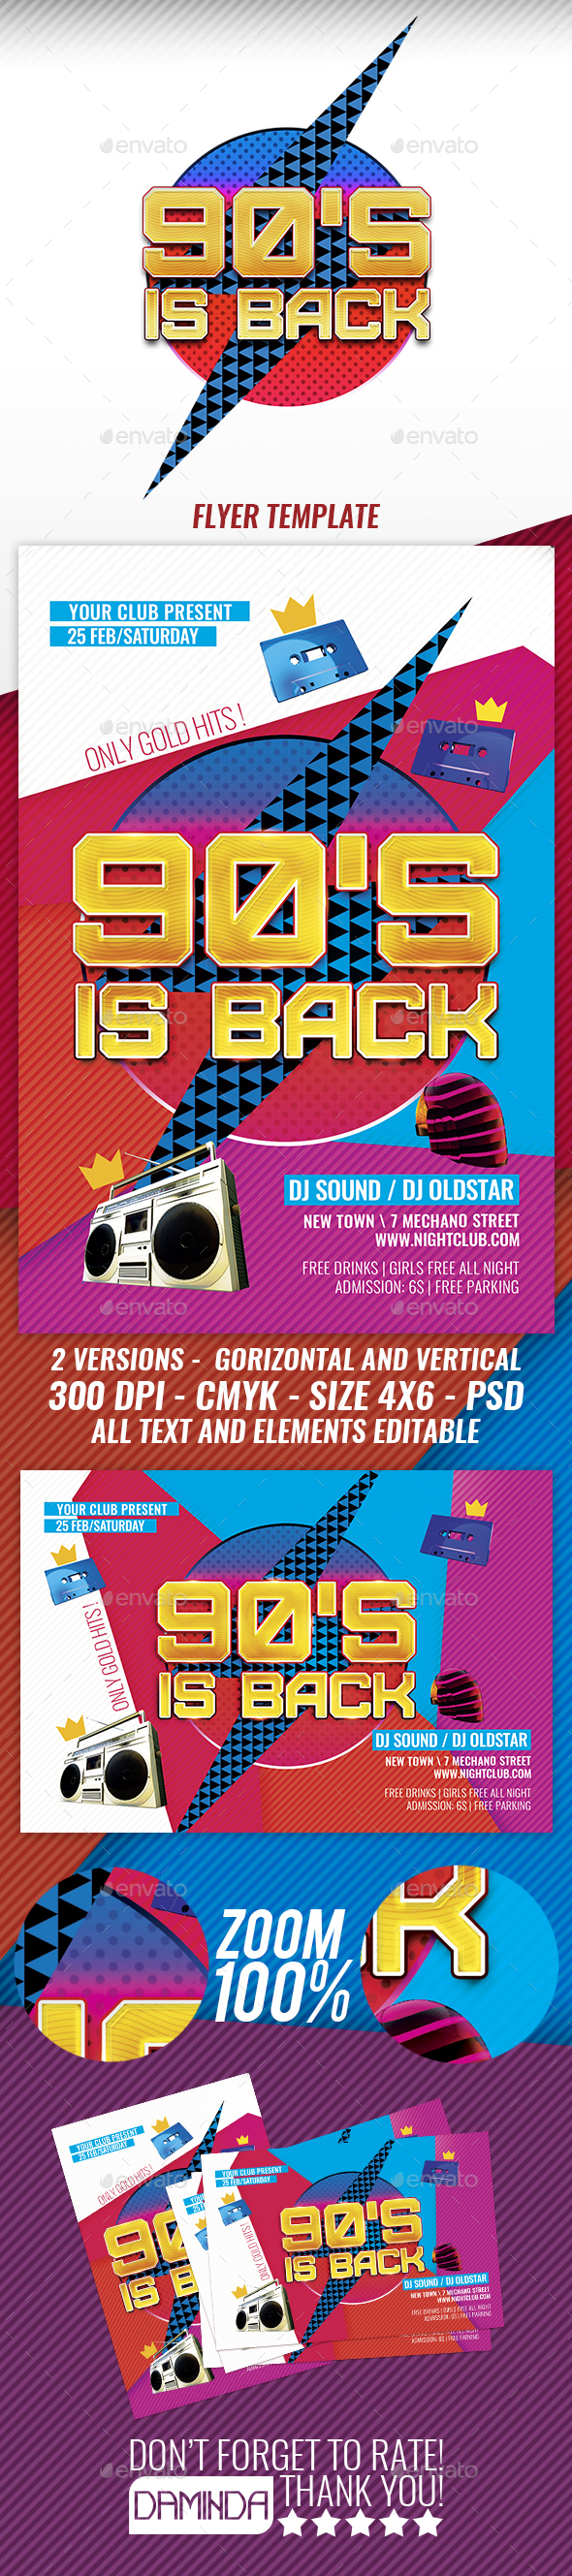 90's is back 2 Flyer Template - Clubs & Parties Events